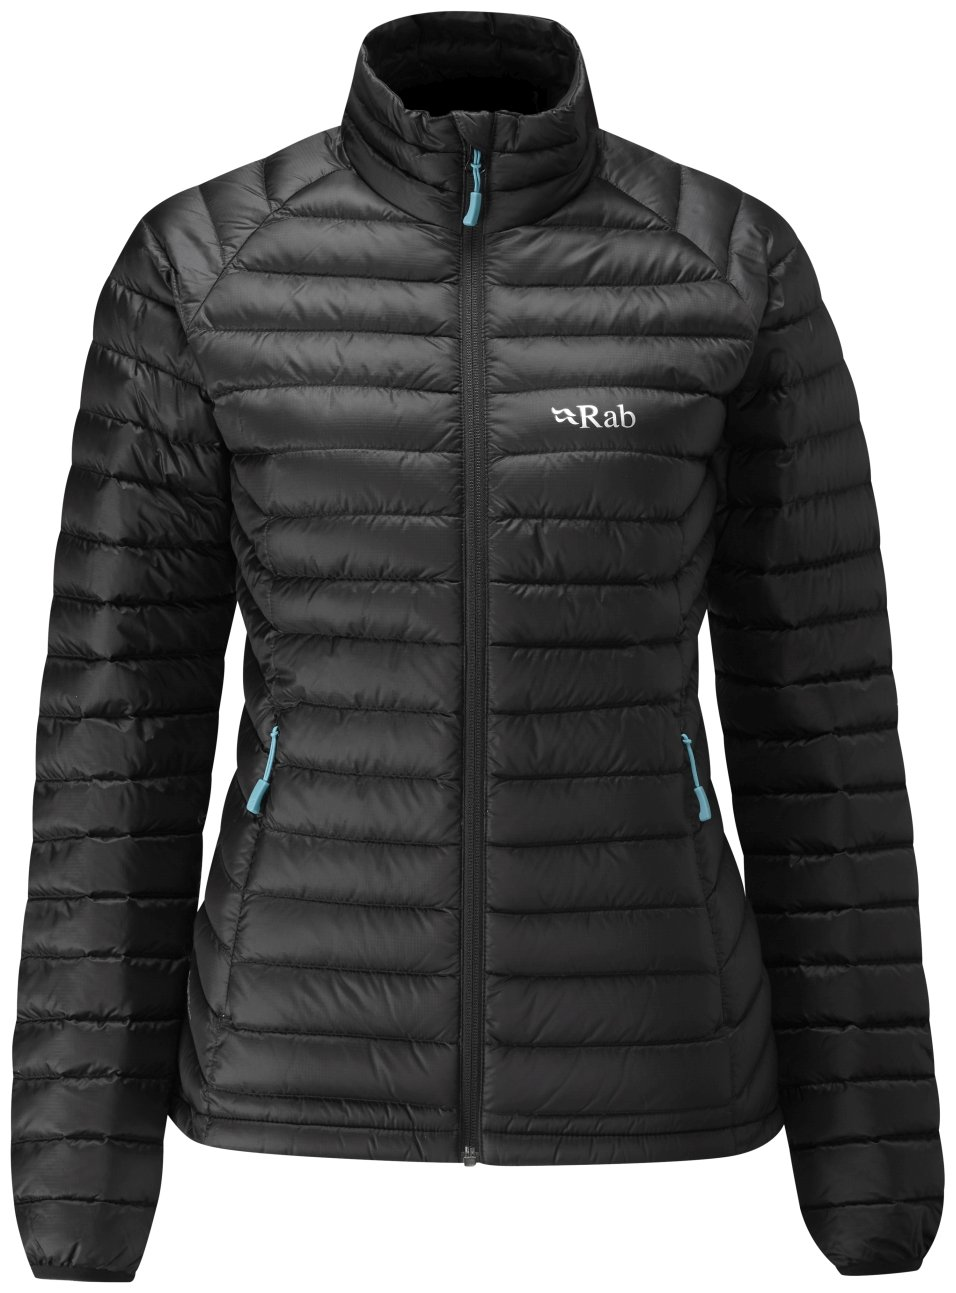 Rab Microlight Jacket - Women's Black/Seaglass Large